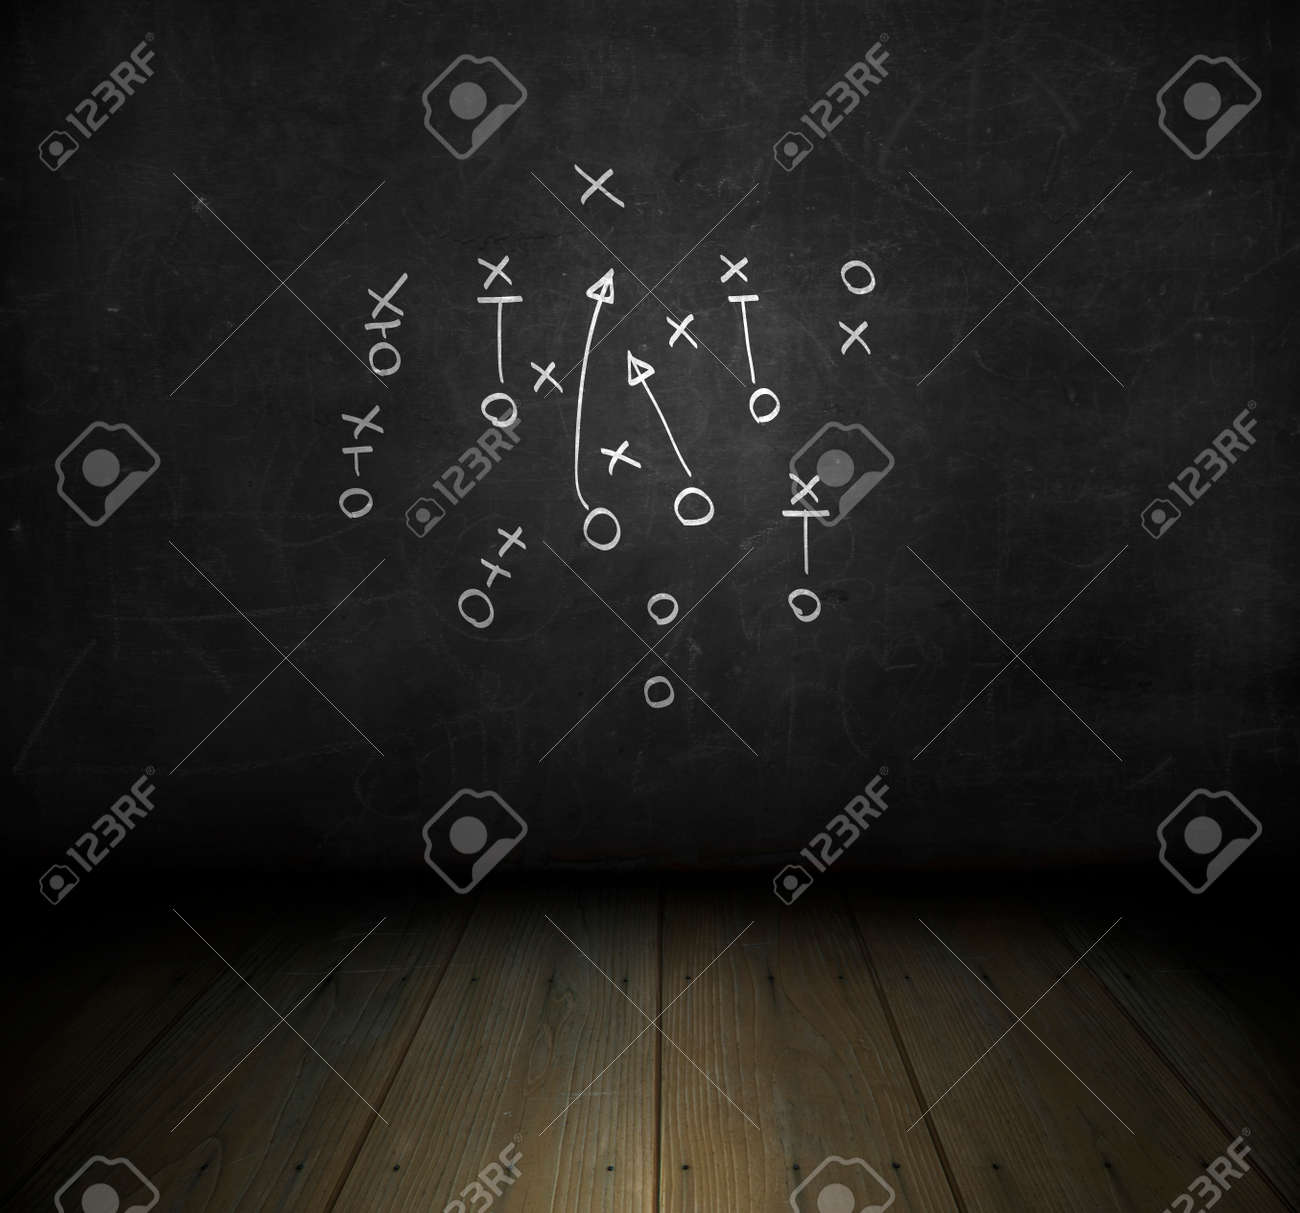 Football play strategy drawn out on a chalk board - 39347894